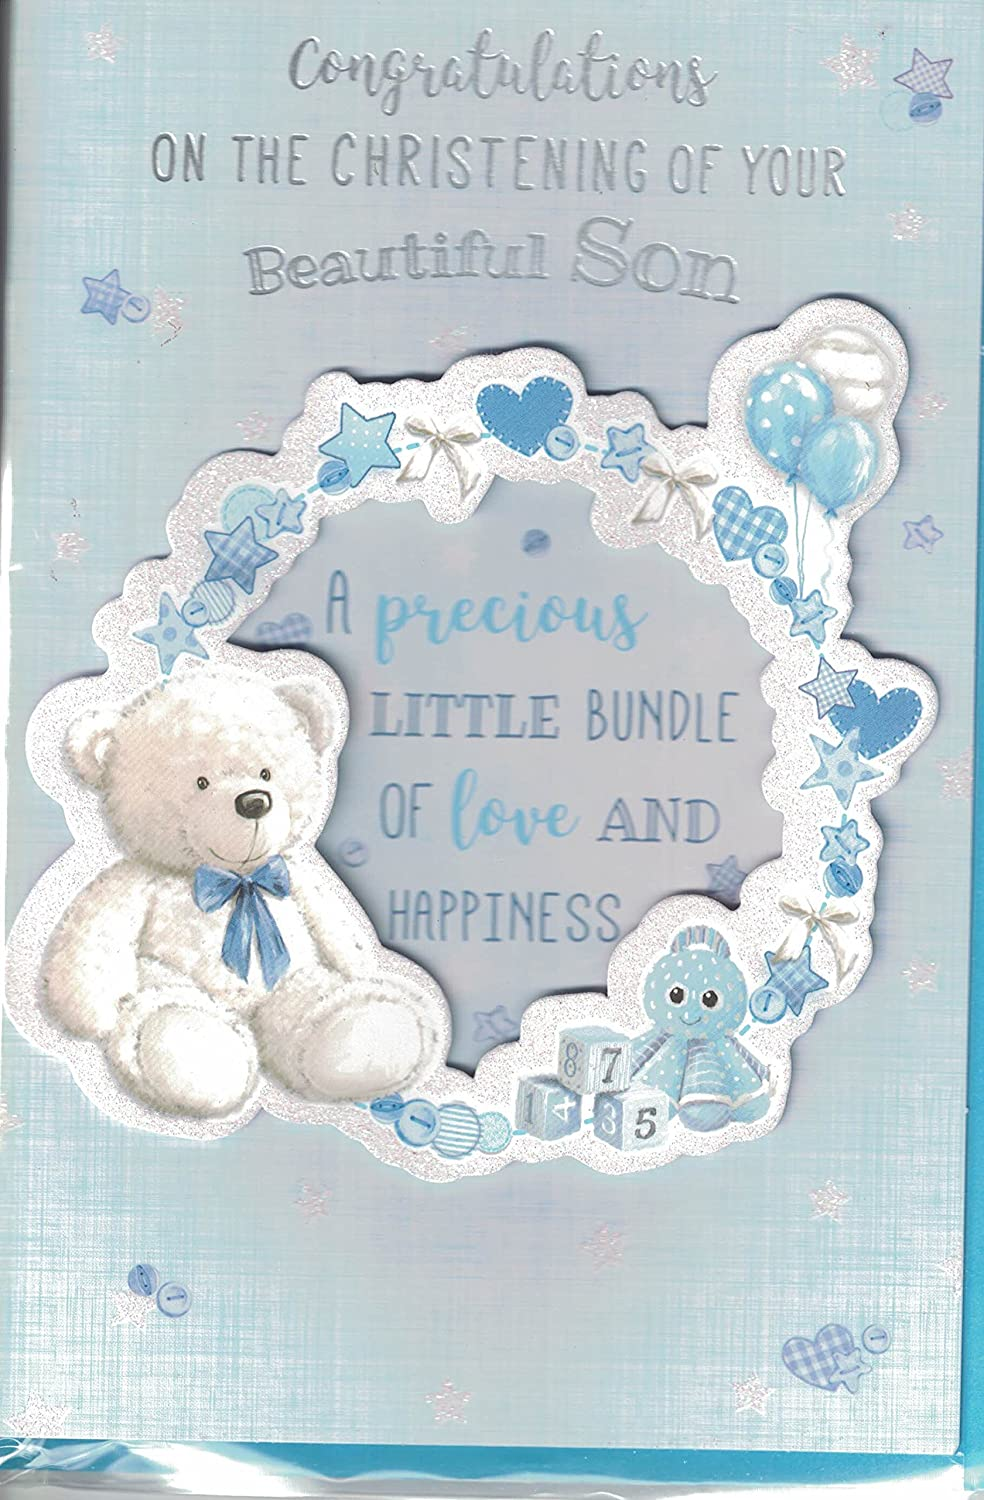 Prelude Christening Card ~ Congratulations On The Christening Of Your Beautiful Son ~ Baby Mobile Slim Card For Boys Size 23cm x 14cm